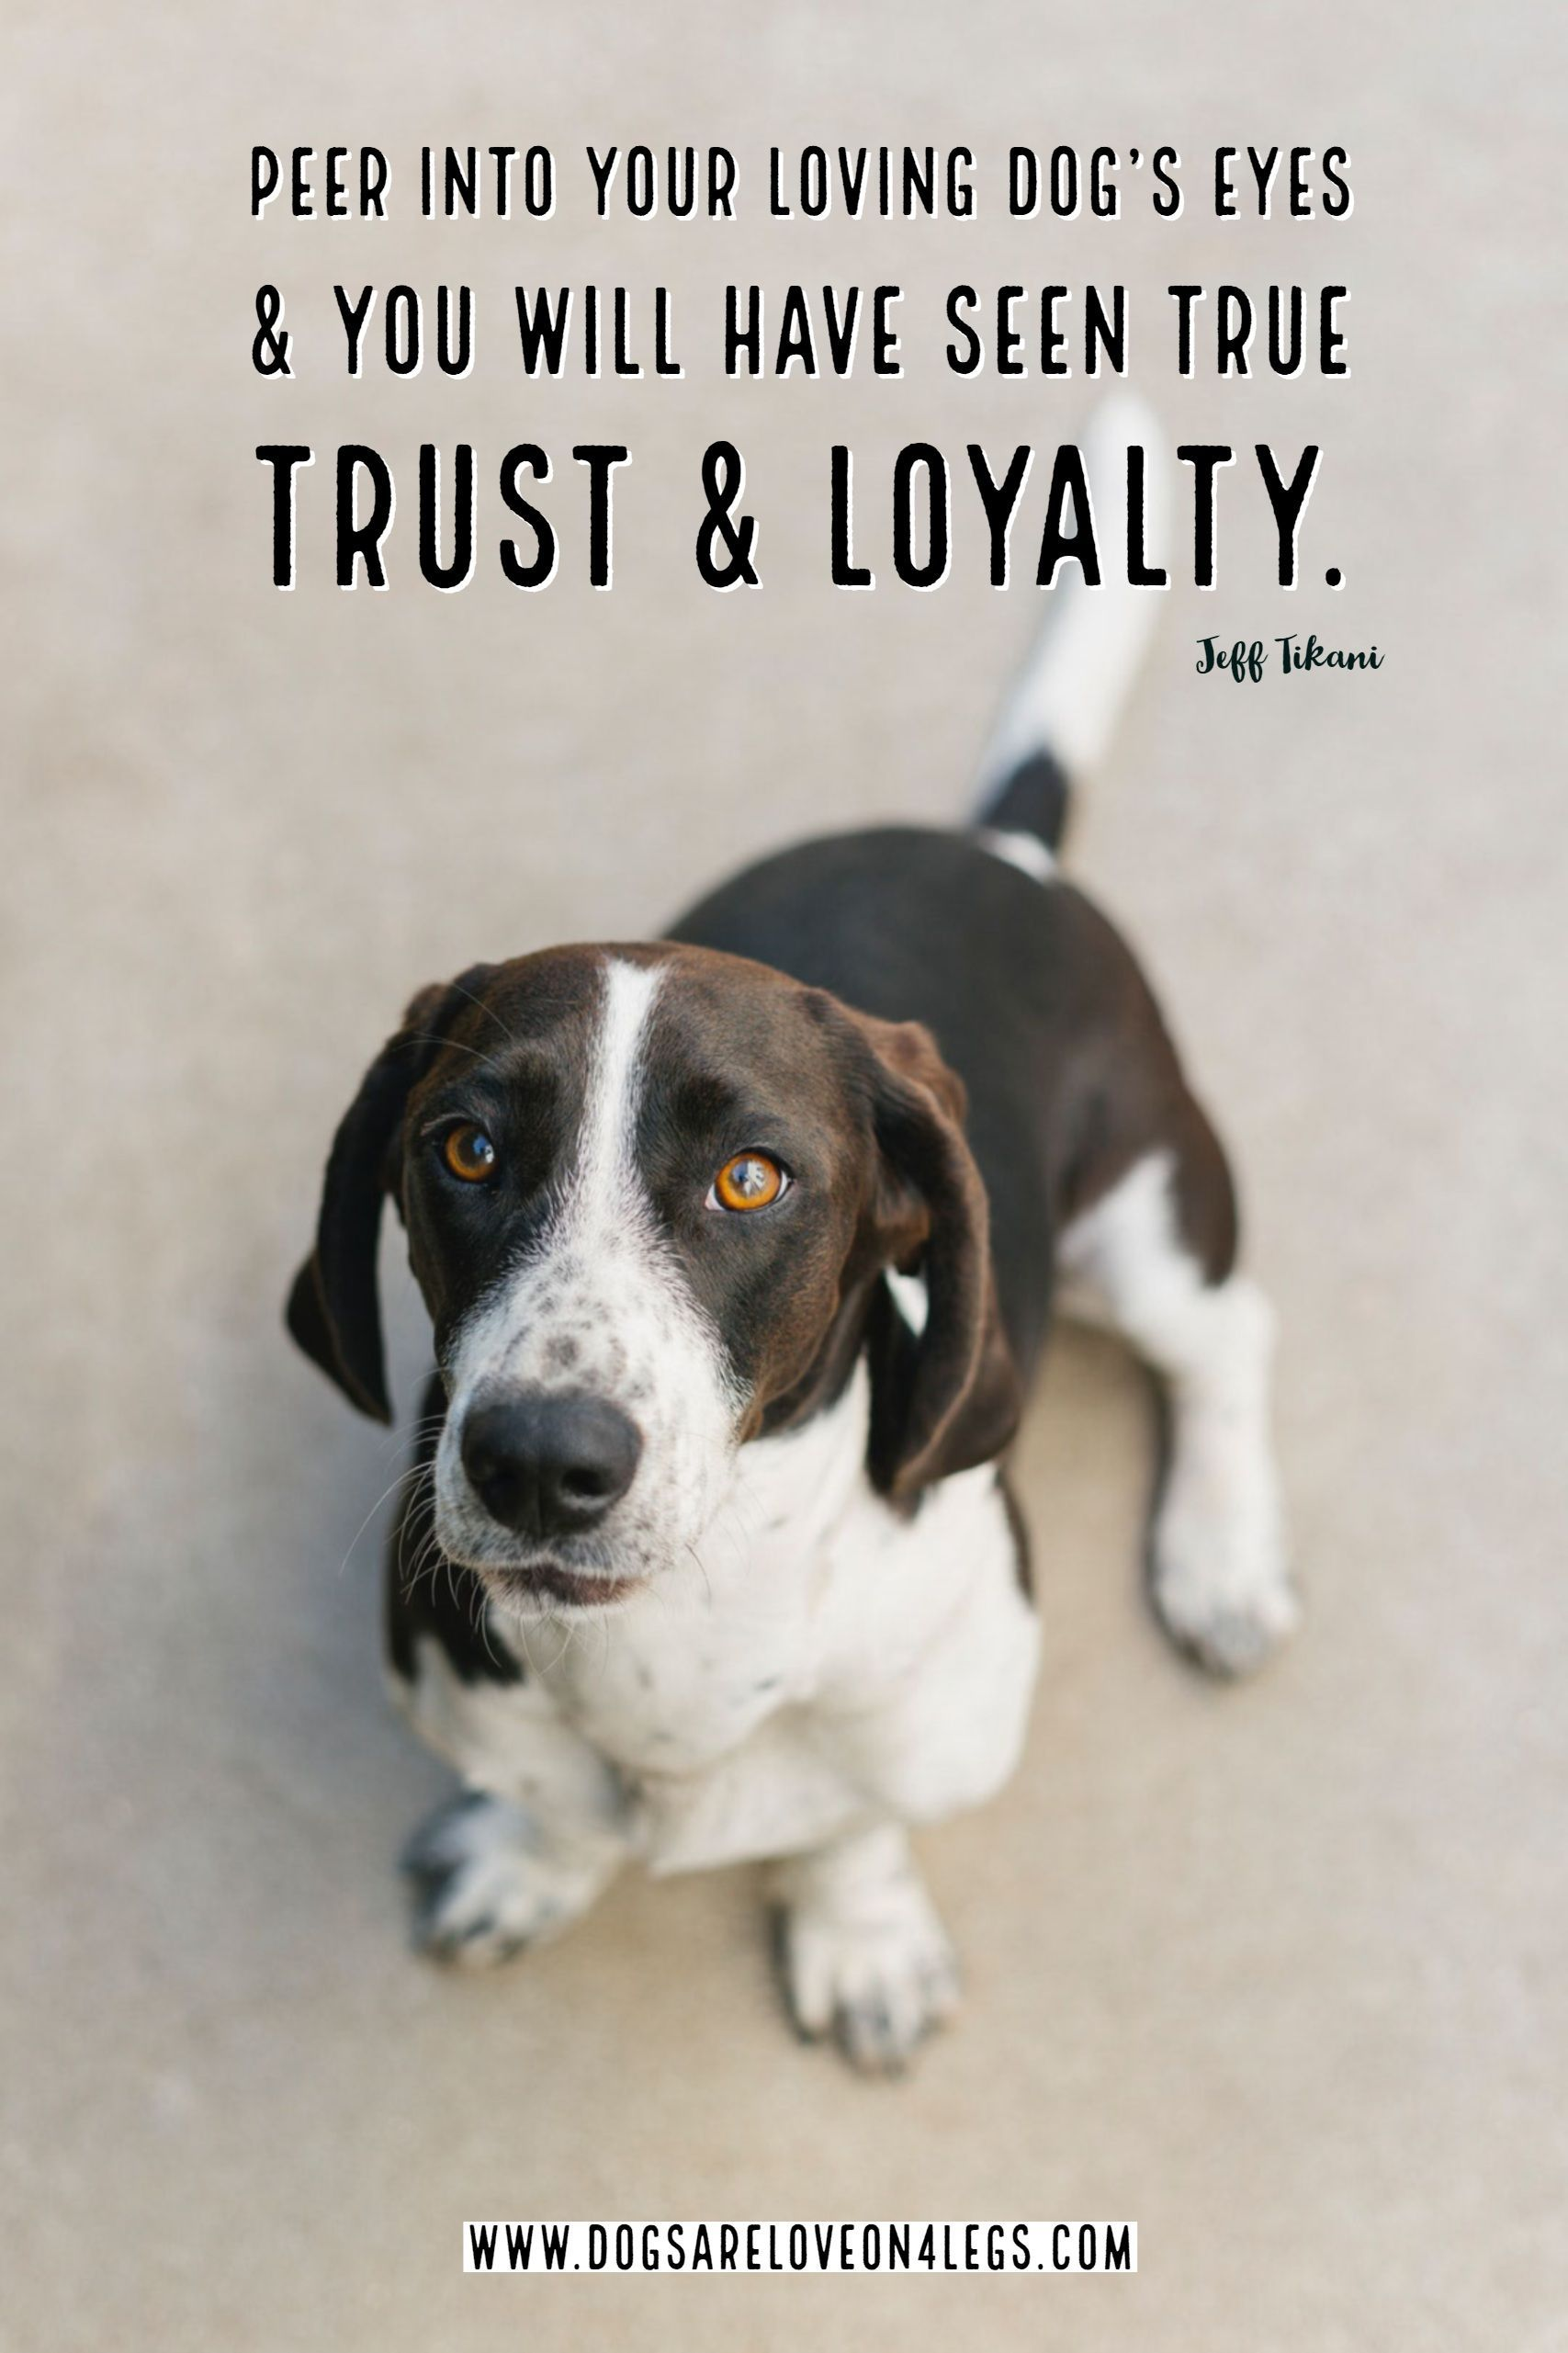 Dog Quote Peer Into Your Loving Dog S Eyes Dog Dog Quotes Inspirational Quotes Funny Quotes Life Quotes Dog Eyes Dog Quotes Cute Dog Quotes